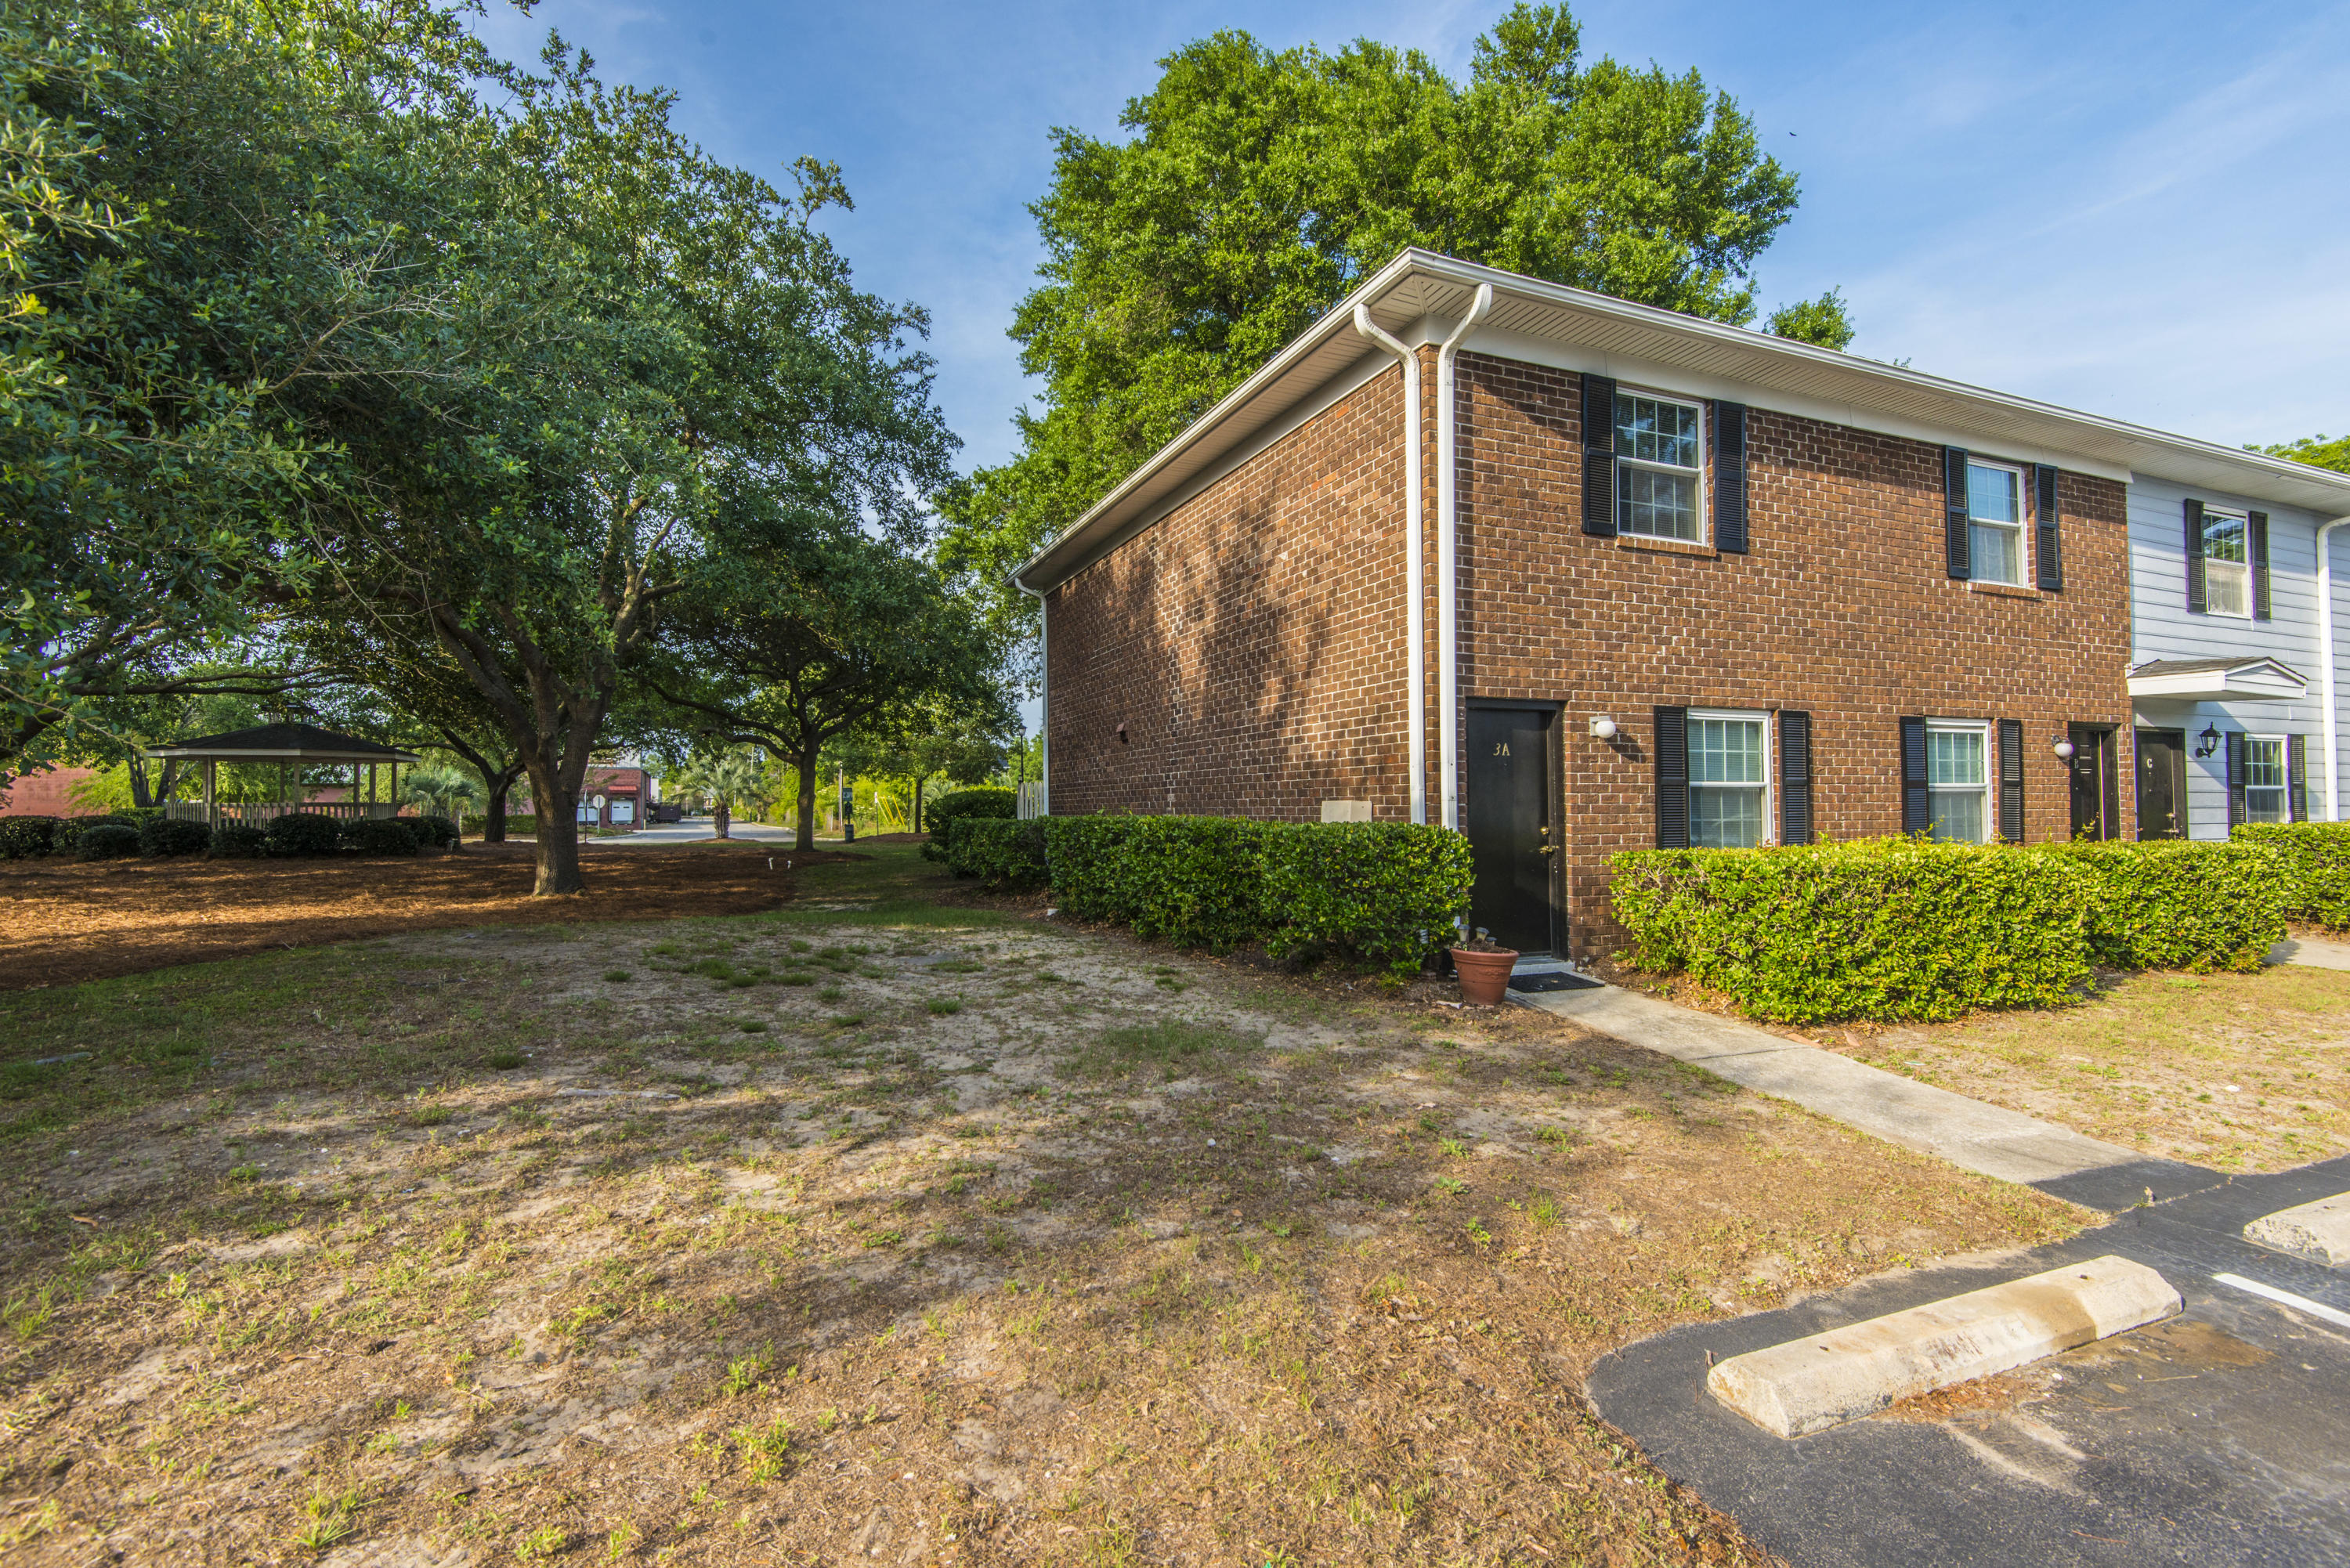 Rivers Point Row Homes For Sale - 21 Rivers Point Row, Charleston, SC - 11